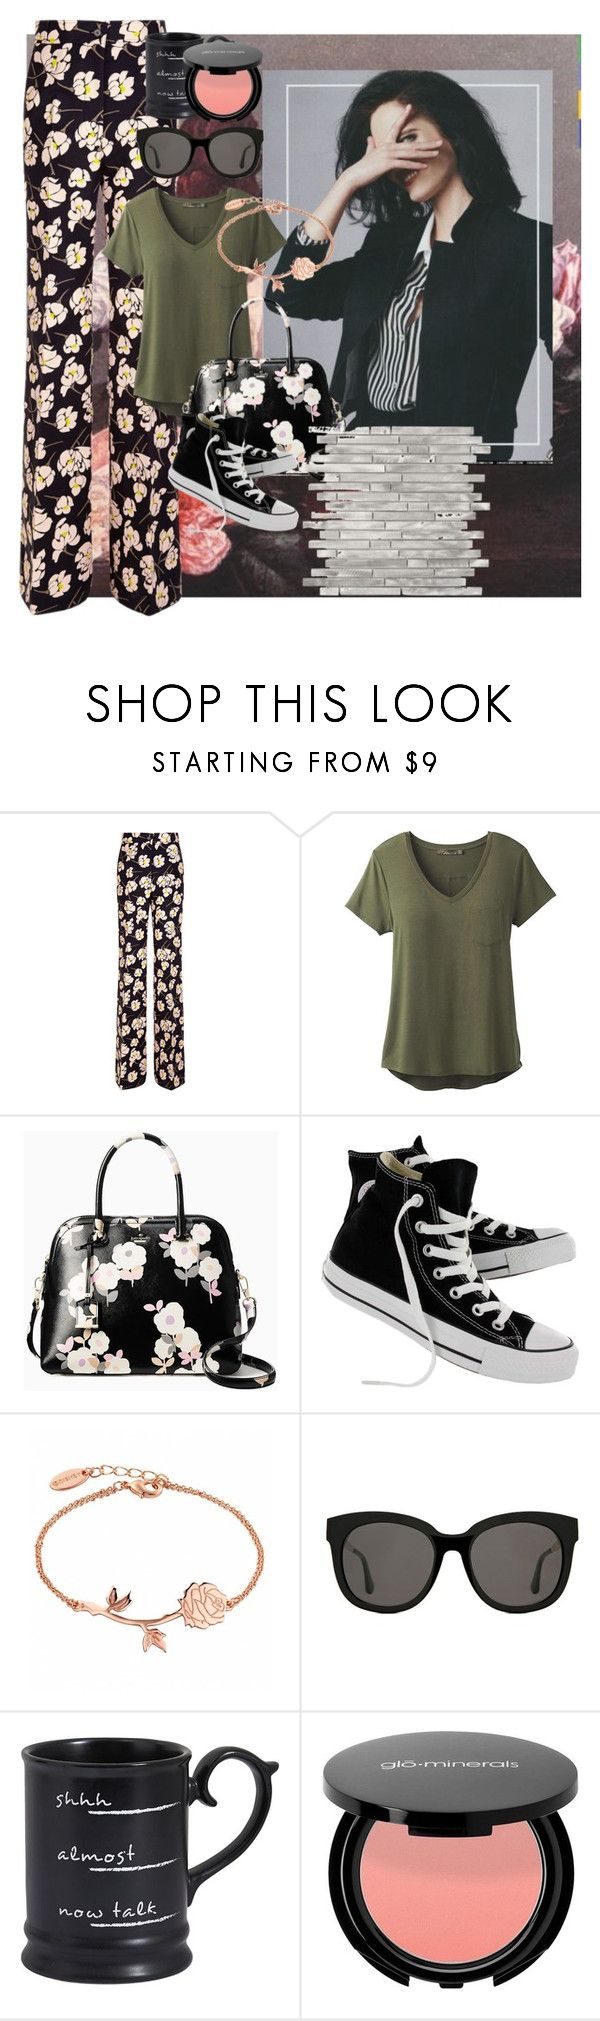 """low defends"" by betsabe13 ❤ liked on Polyvore featuring Rochas, prAna, Kate Spade, Converse, Gentle Monster and Pier 1 Imports"